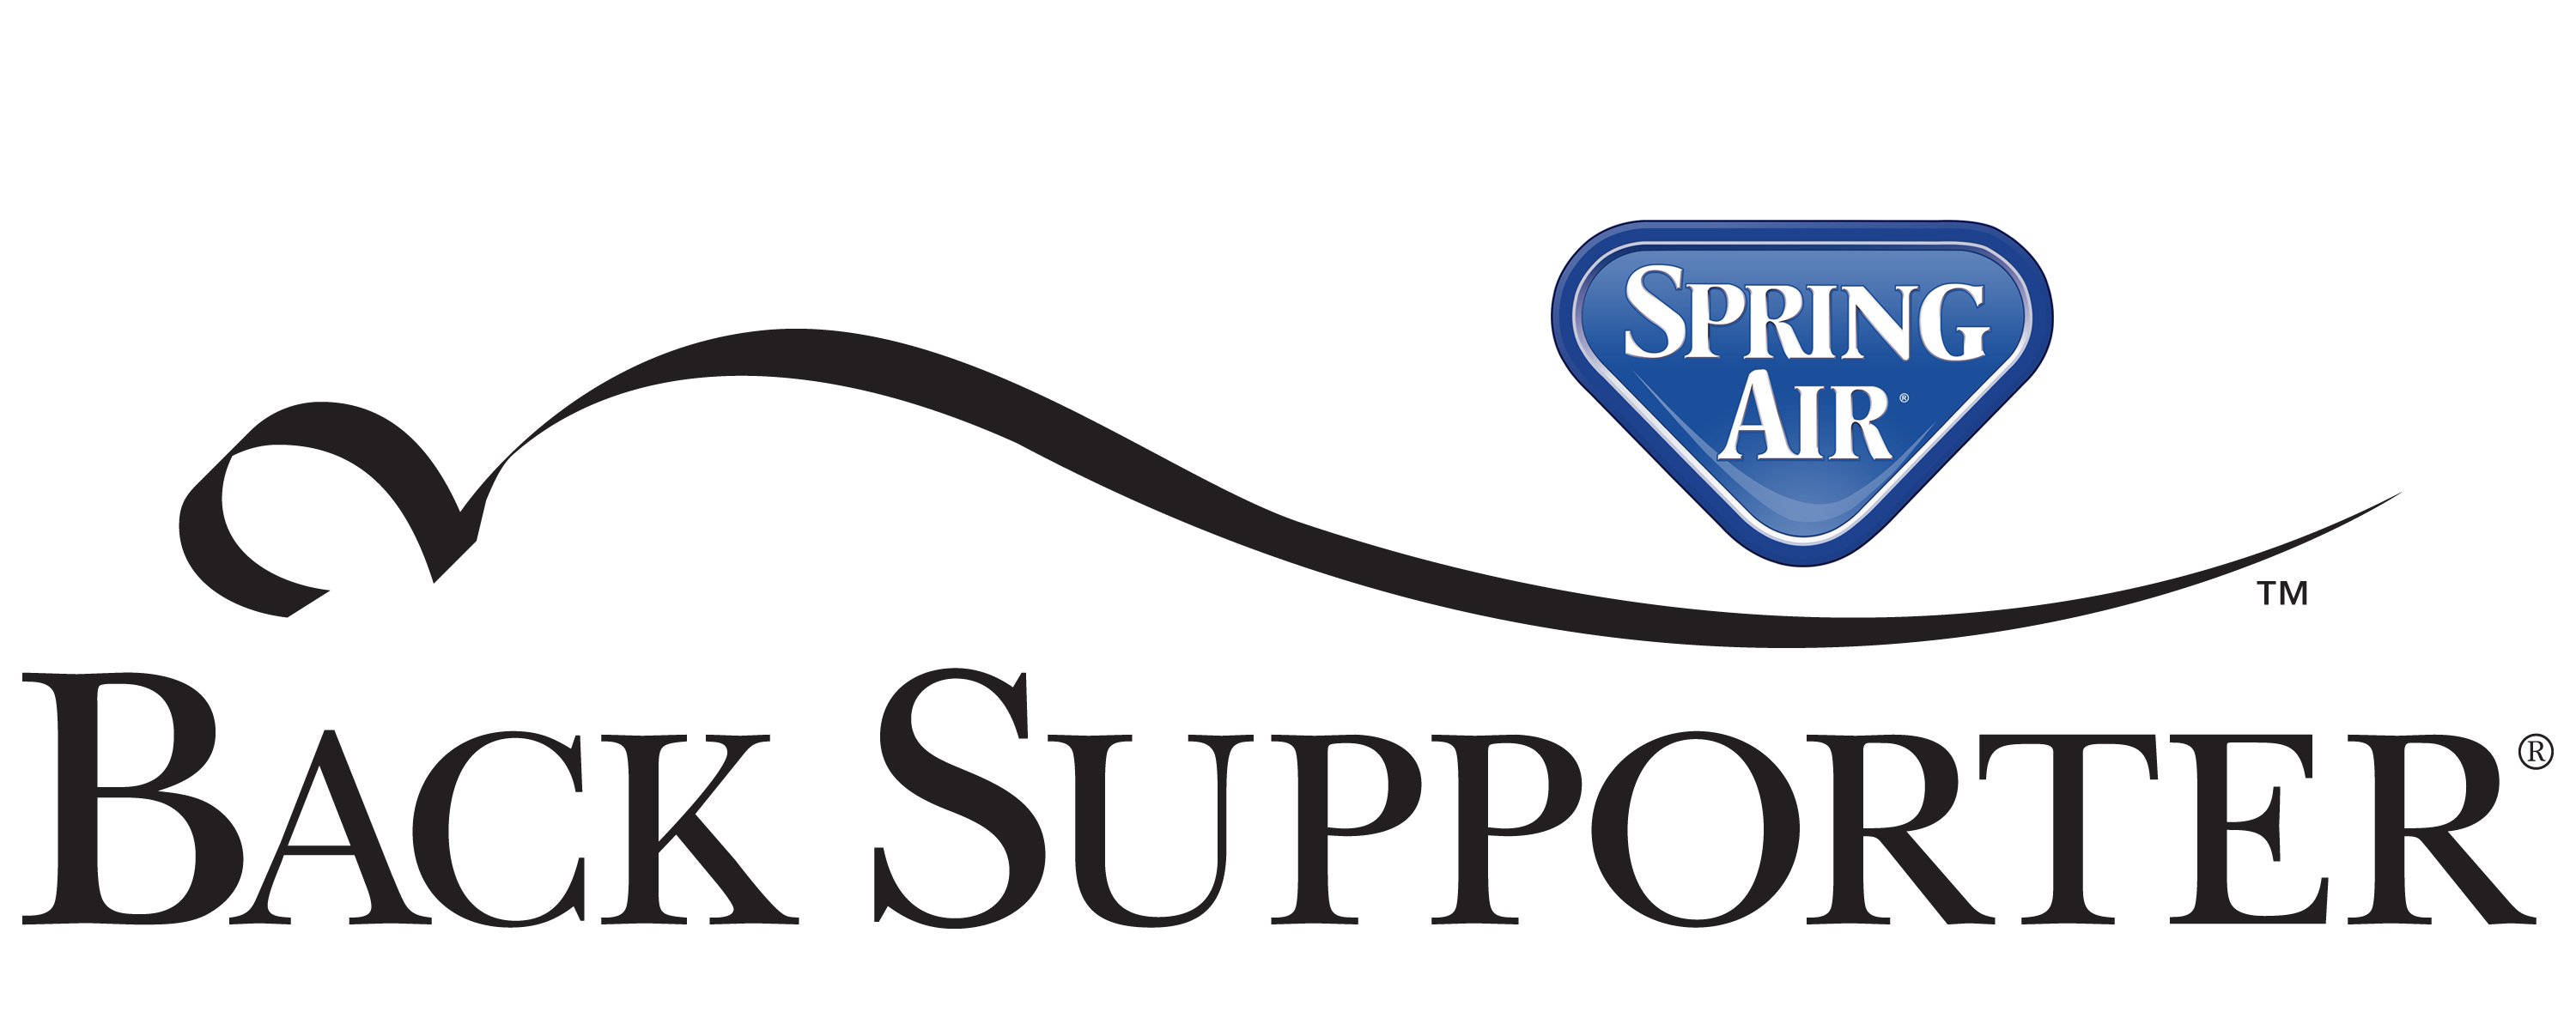 the spring air back supporter mattress series offers you a combination of exceptional back support and comfort